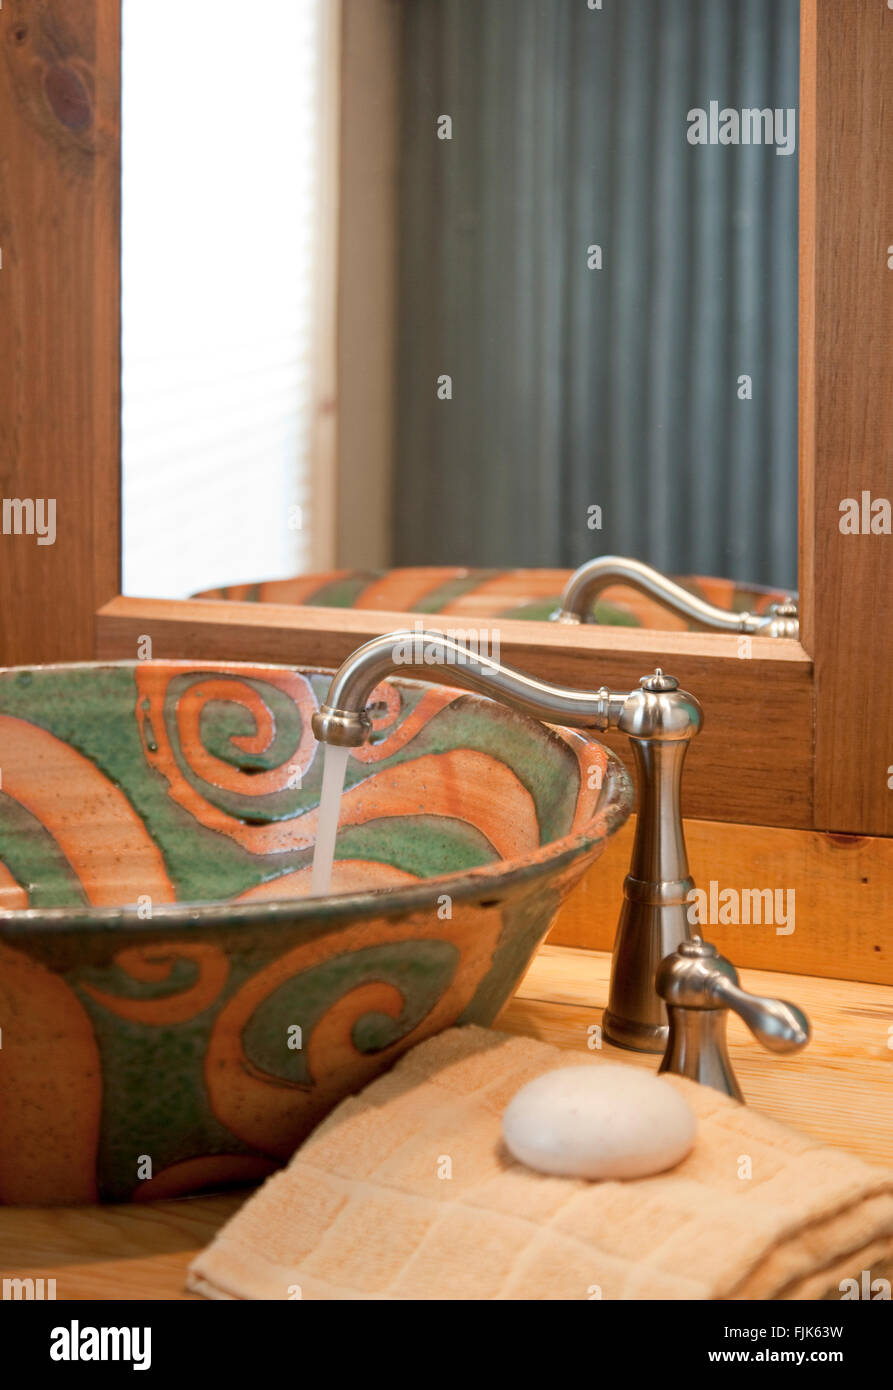 Running water from a stainless steel faucet in a handmade ceramic sink, hand towel and mirror in a creative home - Stock Image